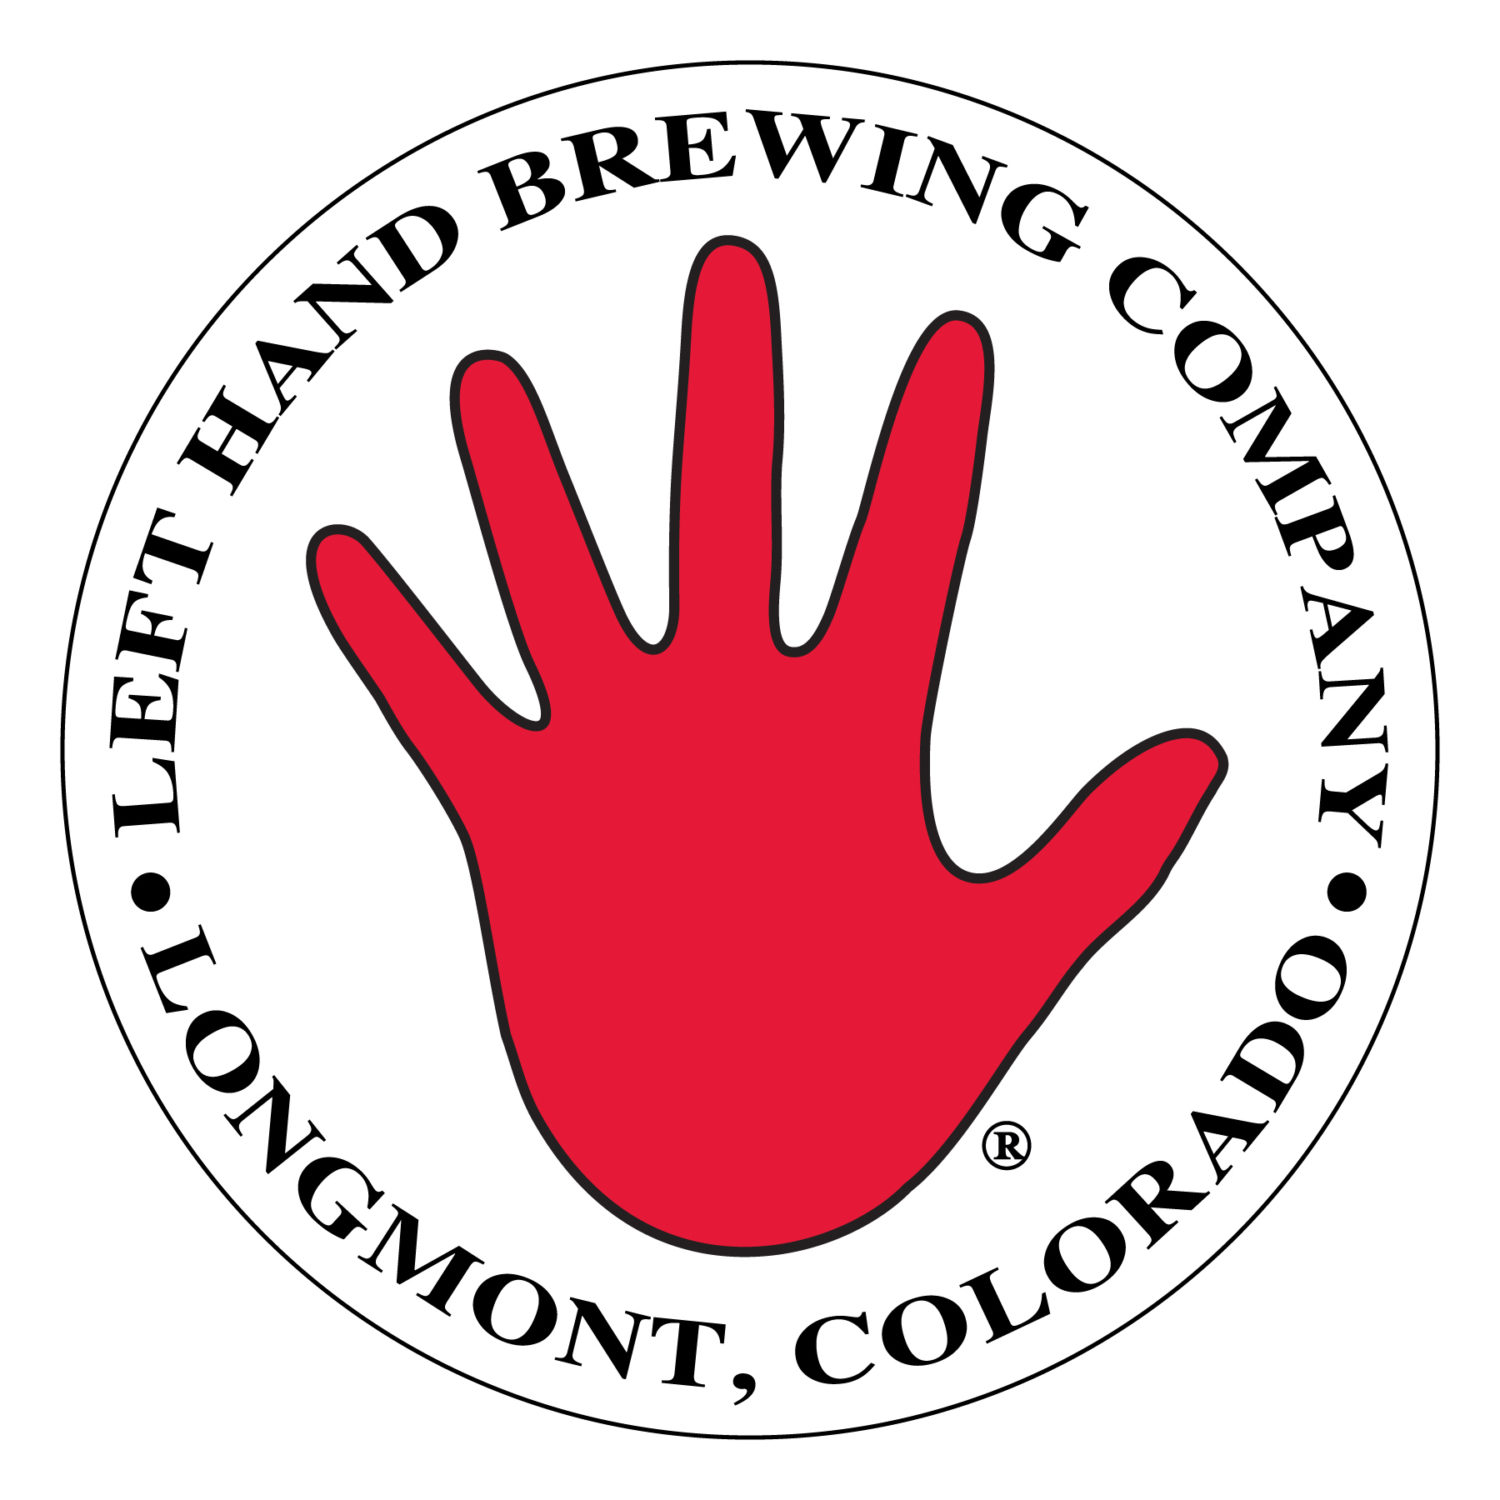 Left Hand Brewing Company logo - Links to website